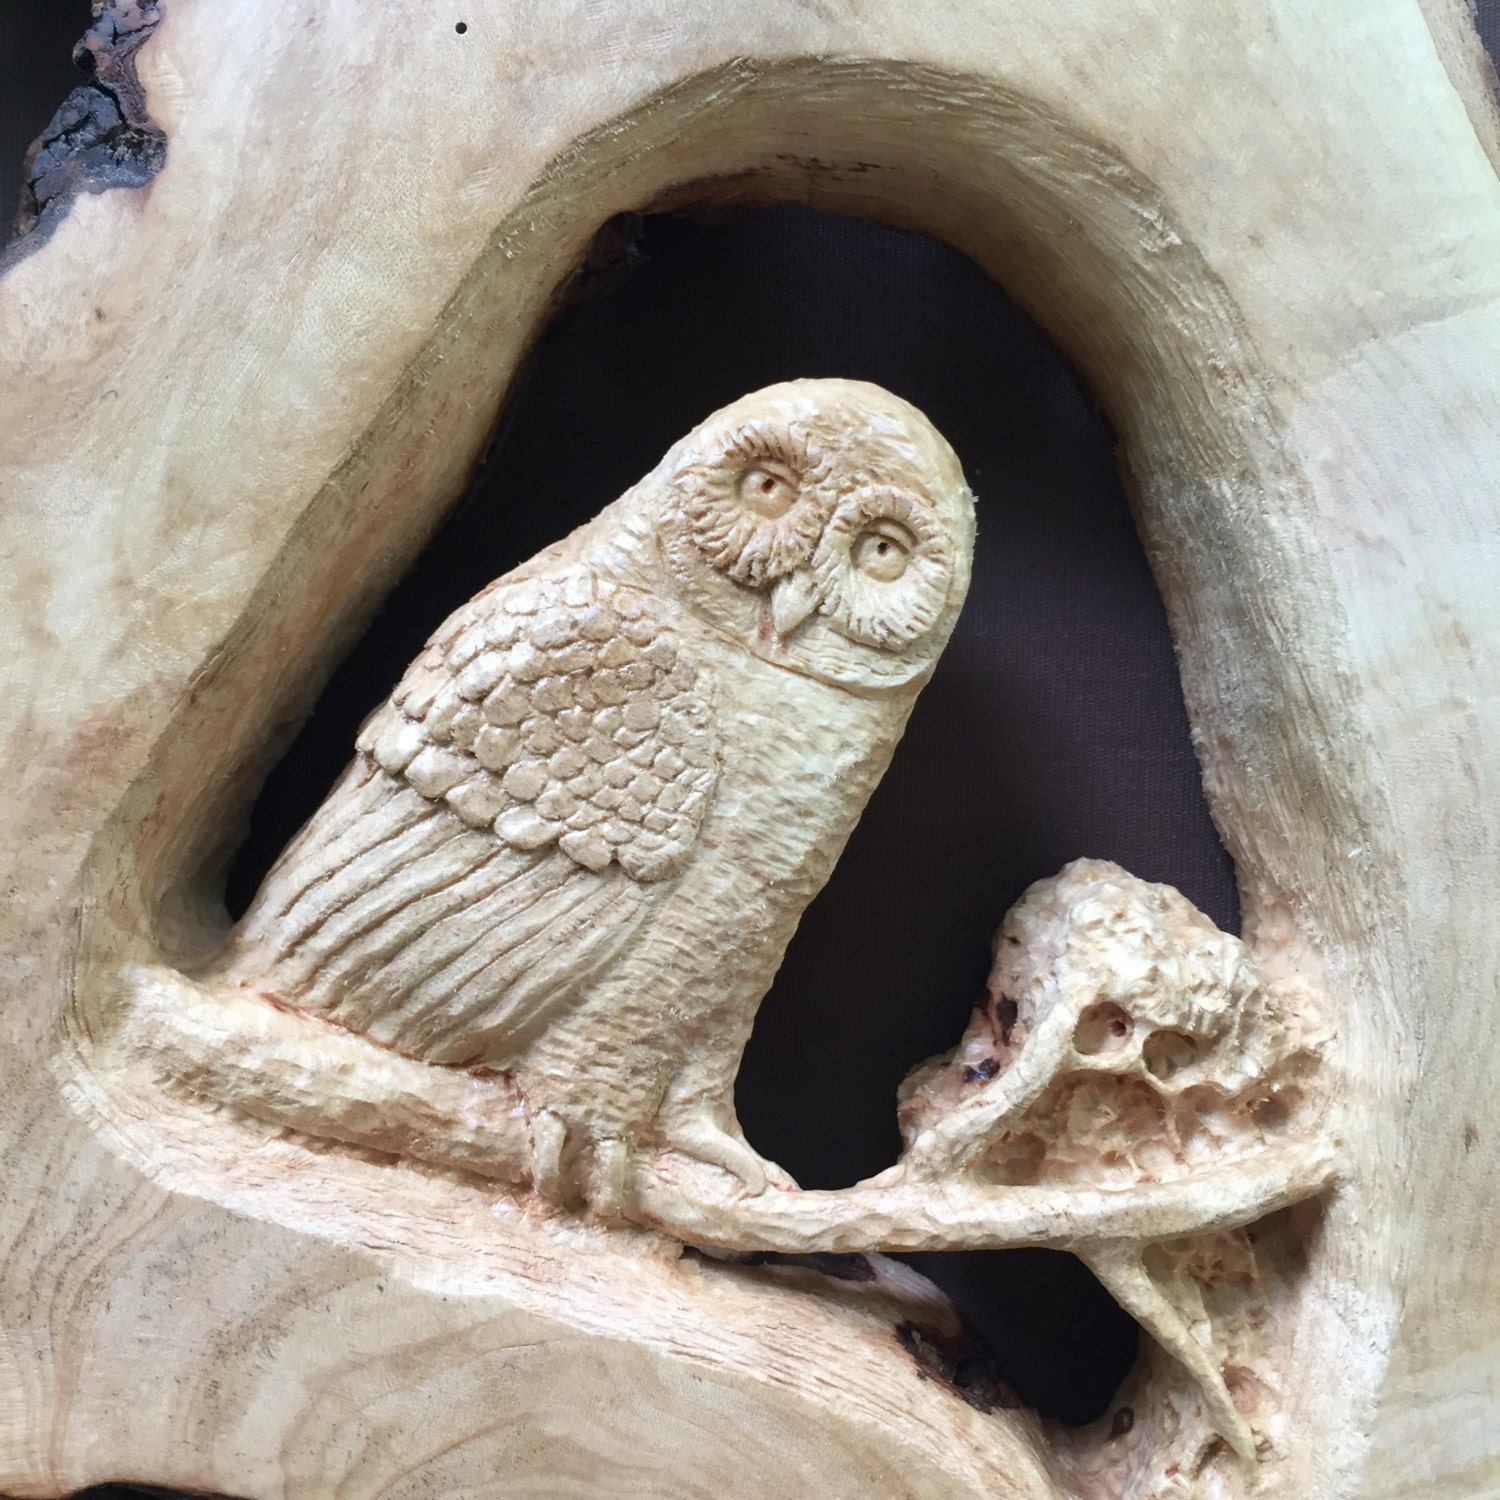 Barn owl relief wood carving inches high amazing wood art